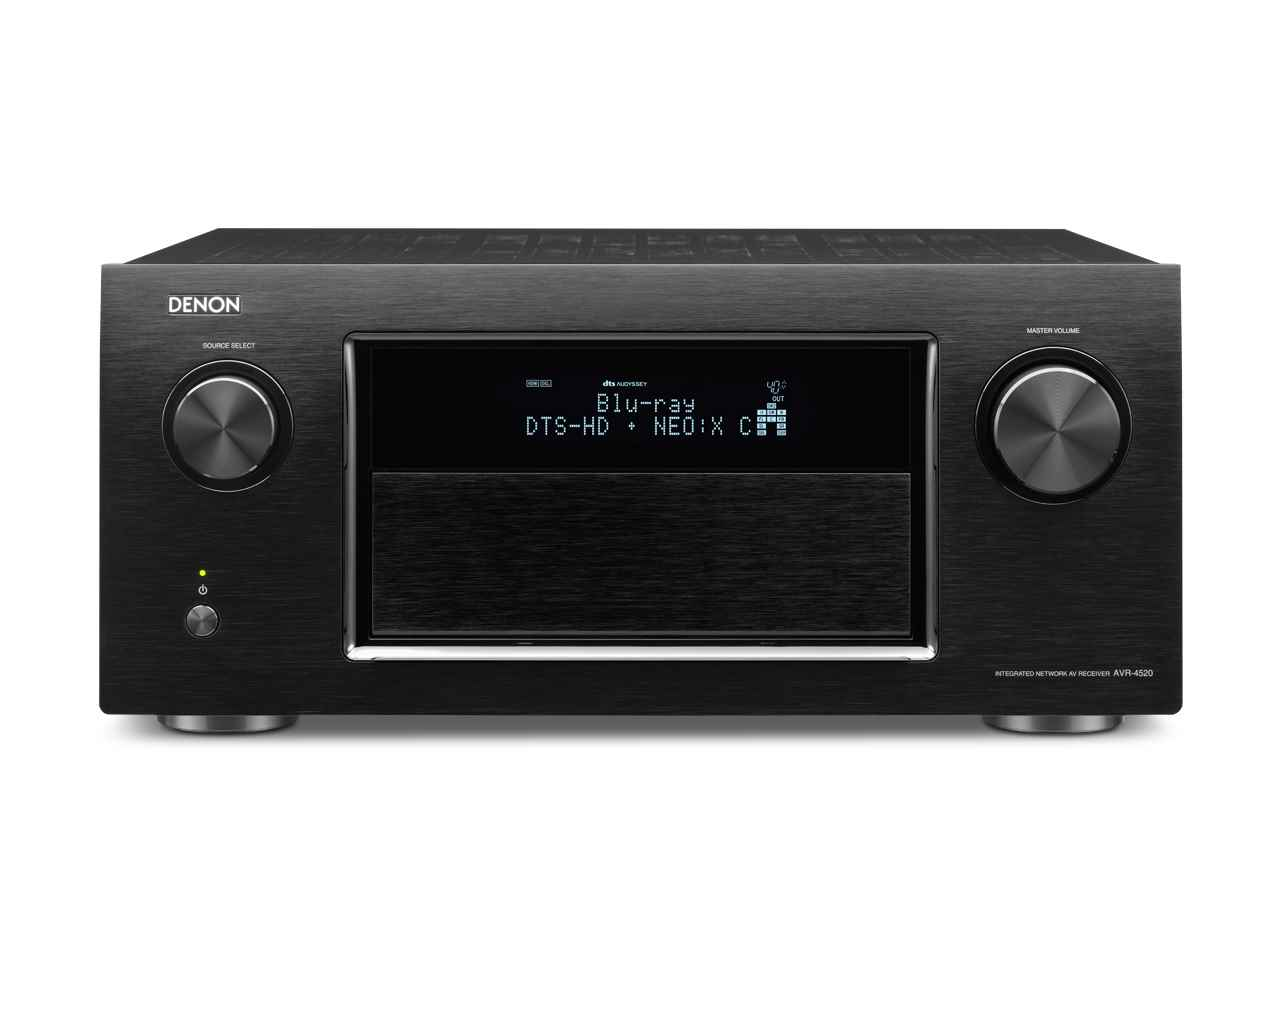 Black Denon audio video component